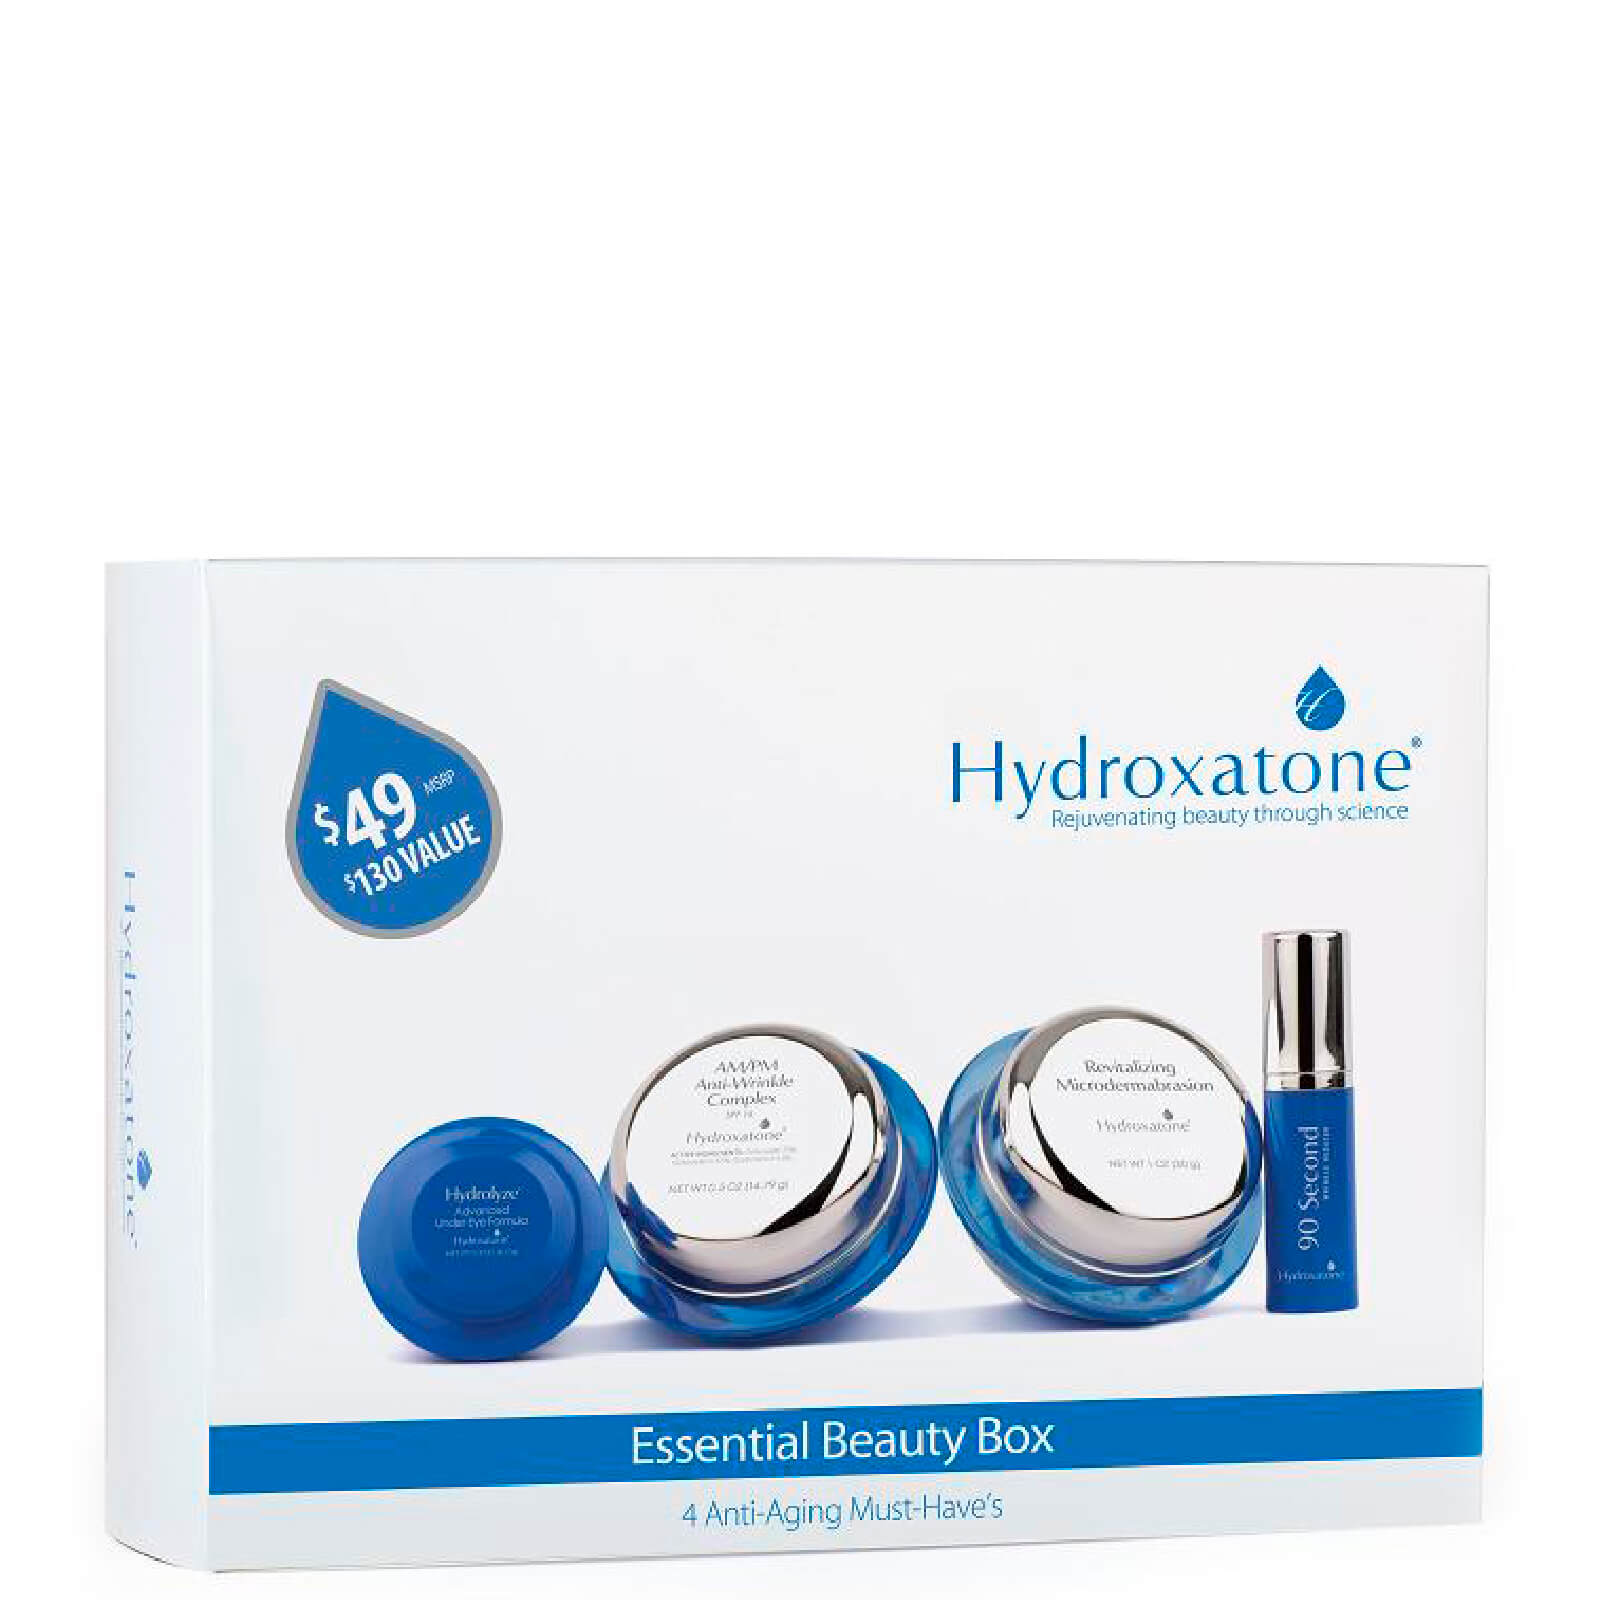 Hydroxatone Ultimate Essentials Kit